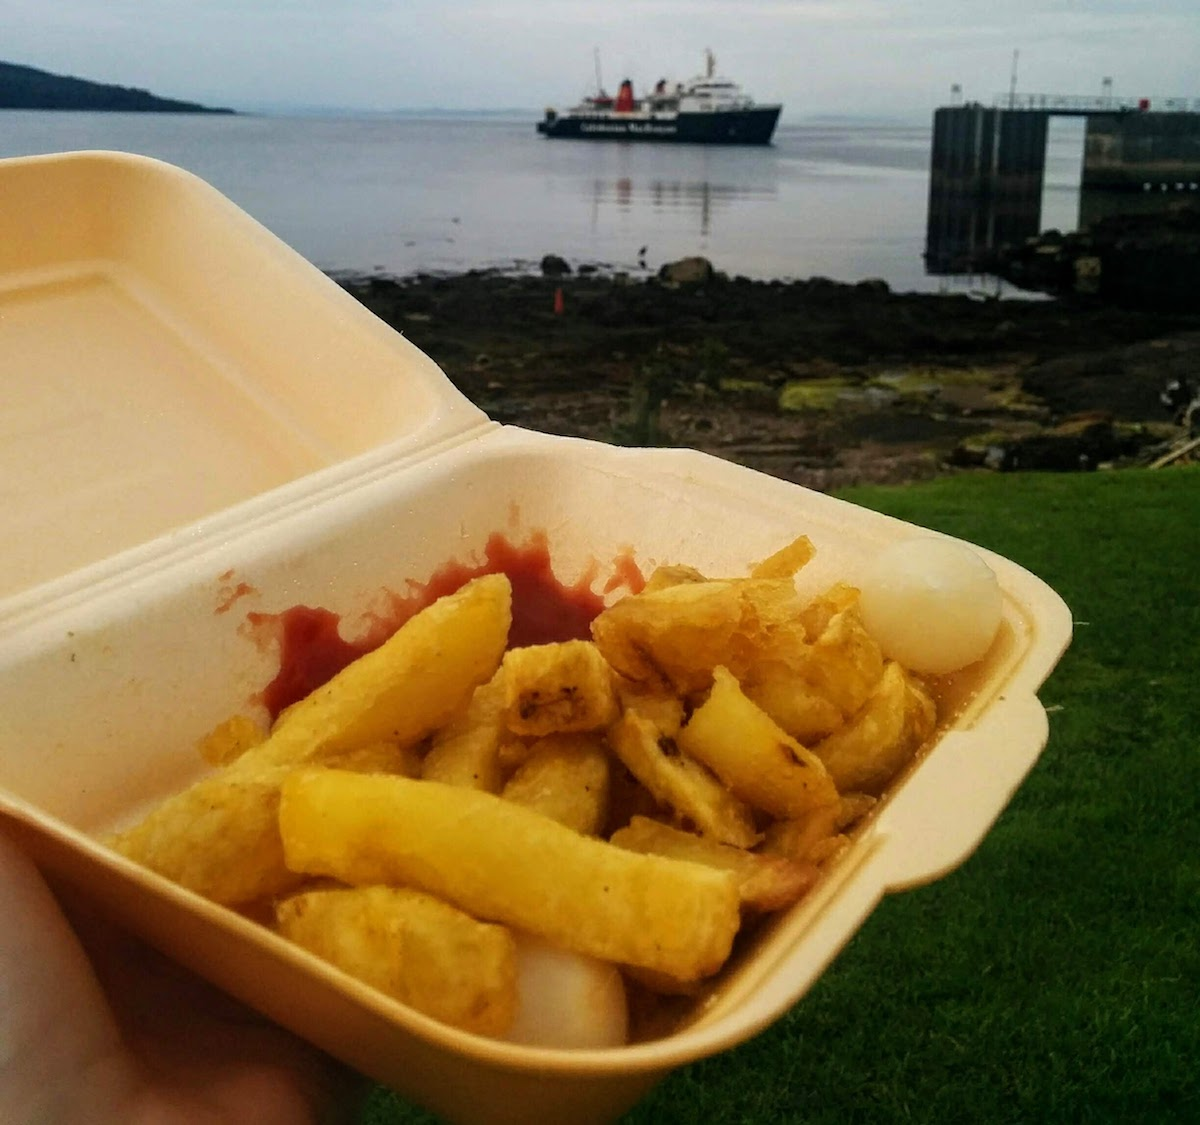 chips on arran with ferry in the background